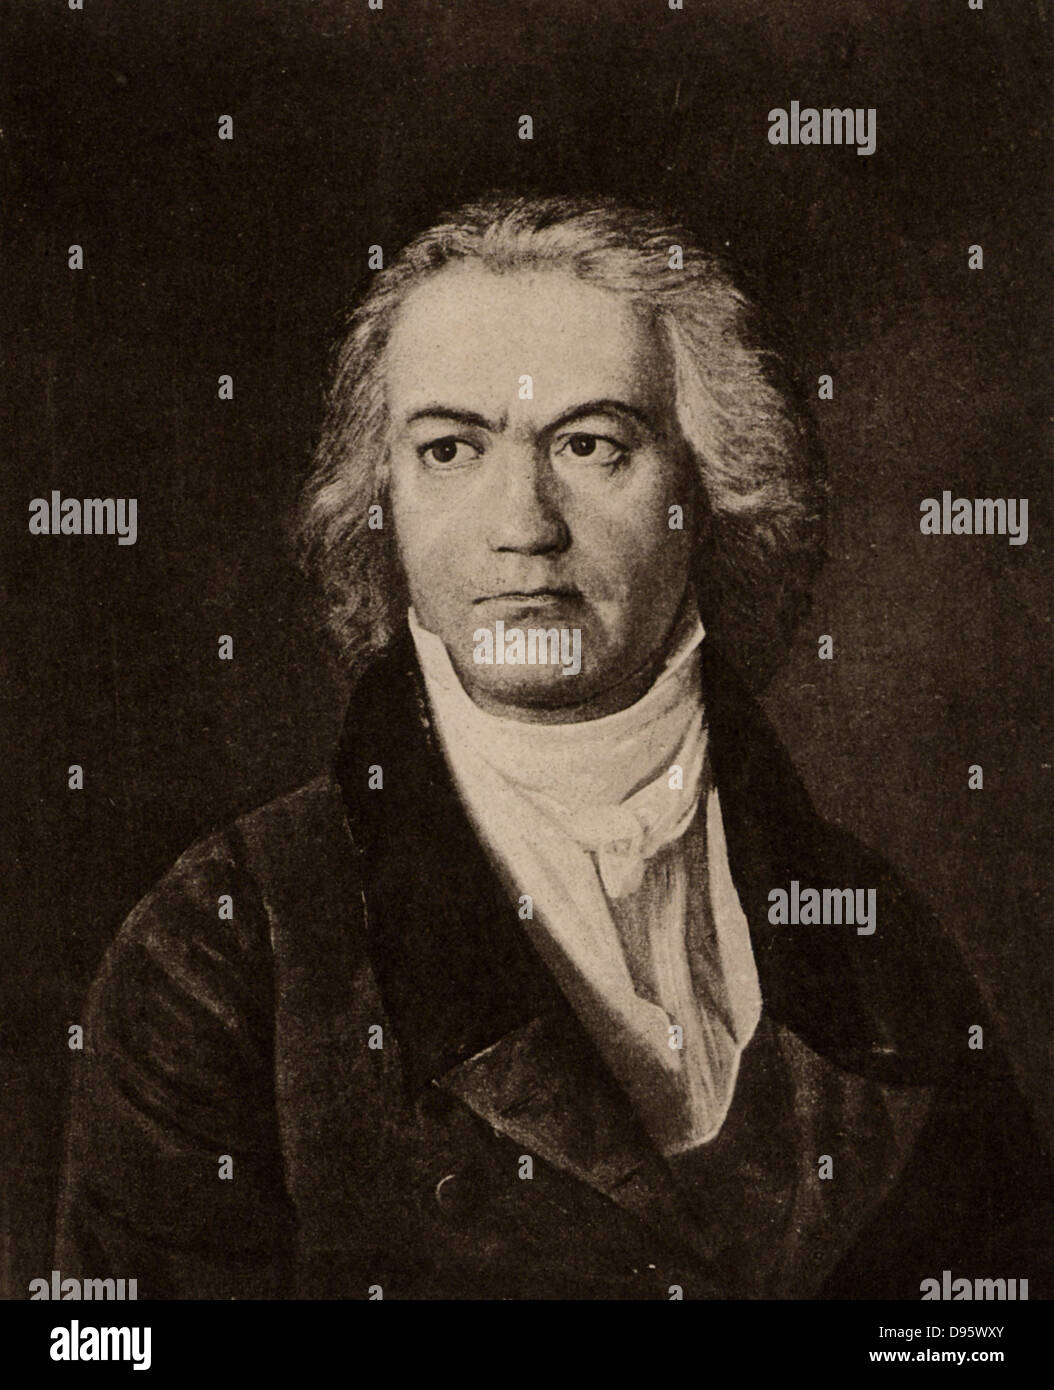 Ludwig van Beethoven (1770-1827) German composer, a bridge between the Classical and Romantic styles. Lithograph. - Stock Image